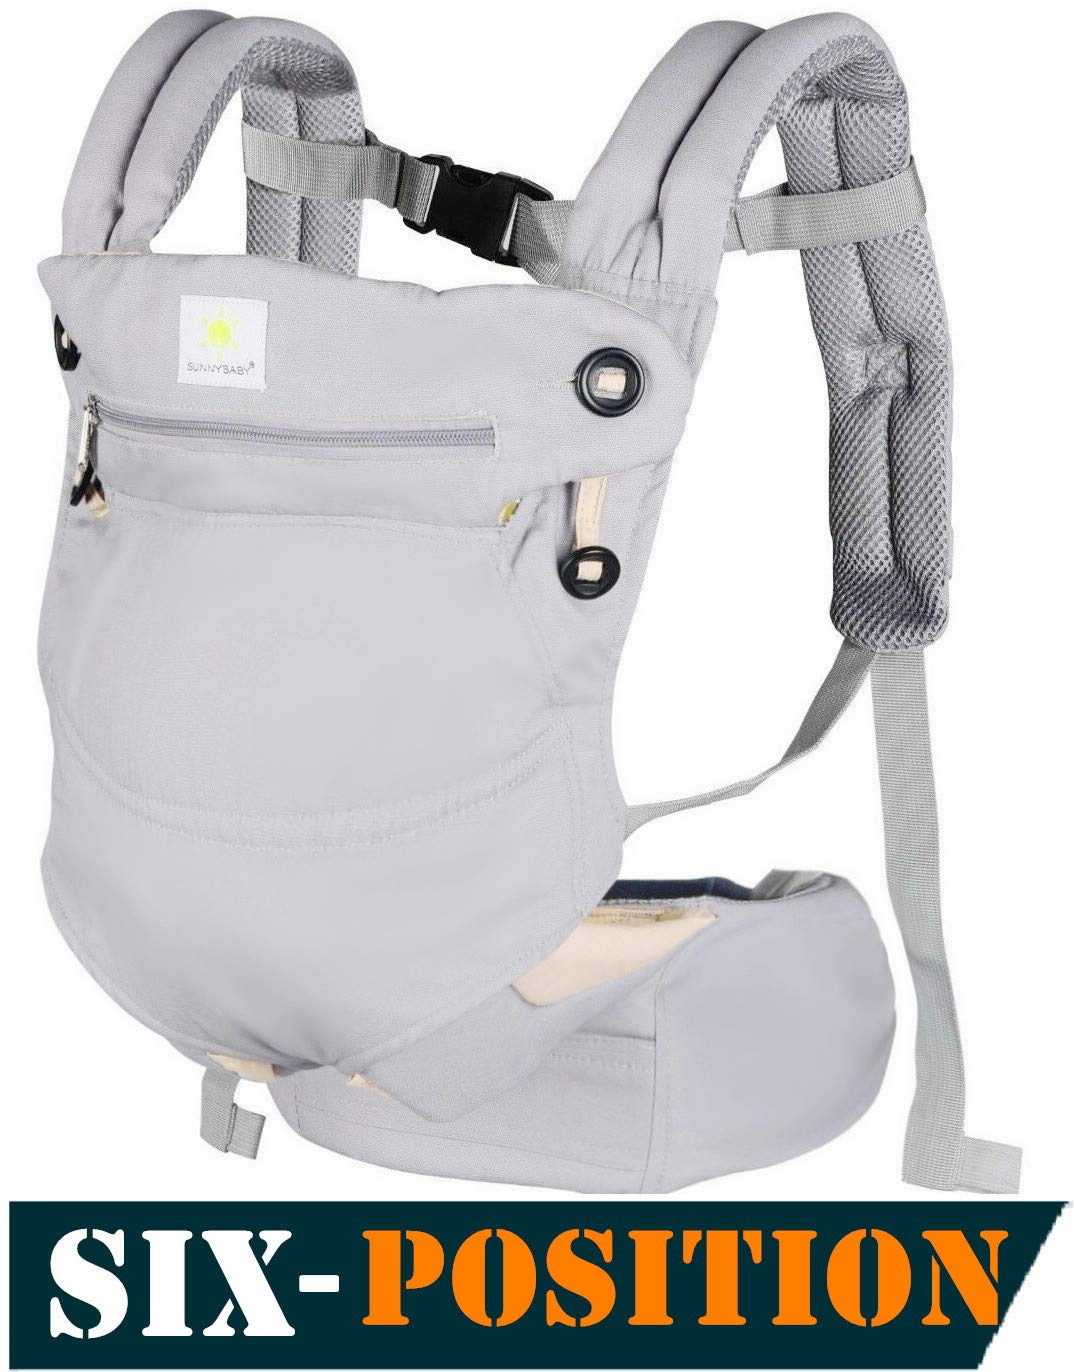 Baby Carriers Front and Back,All-Position 360° Ergonomic Baby & Child Carrier,All Season Baby Carrier Sling,Ergonomic Multi-Position Carrying for Infants Babies Toddlers and Newborn,Grey.